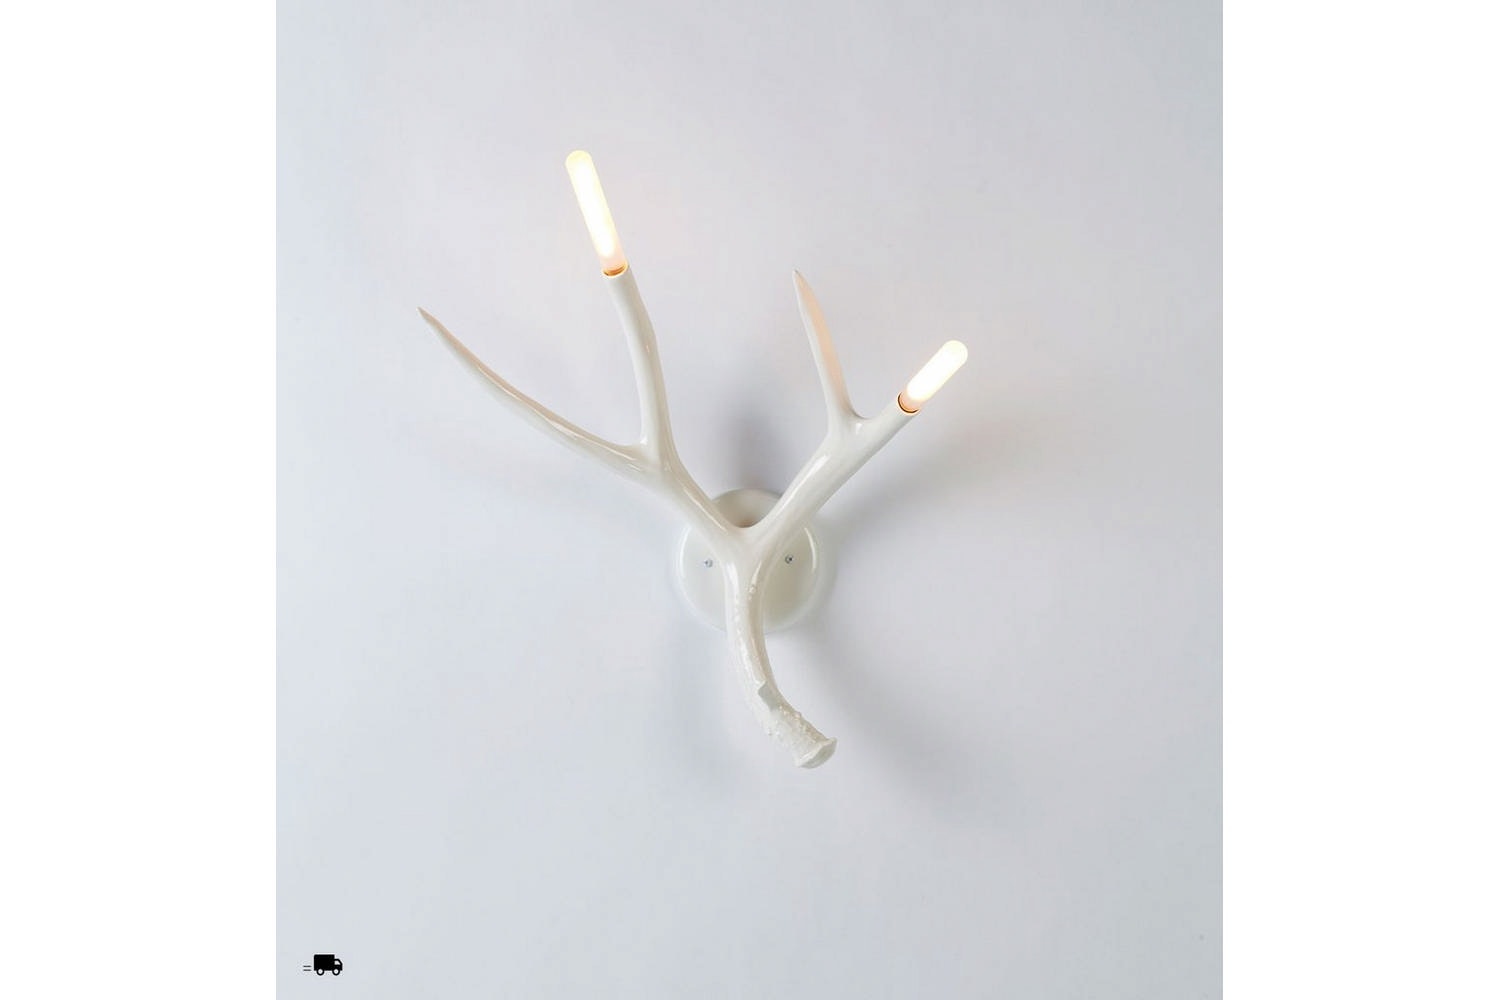 Superordinate Antler Sconce Wall Lamp by Jason Miller for Roll & Hill